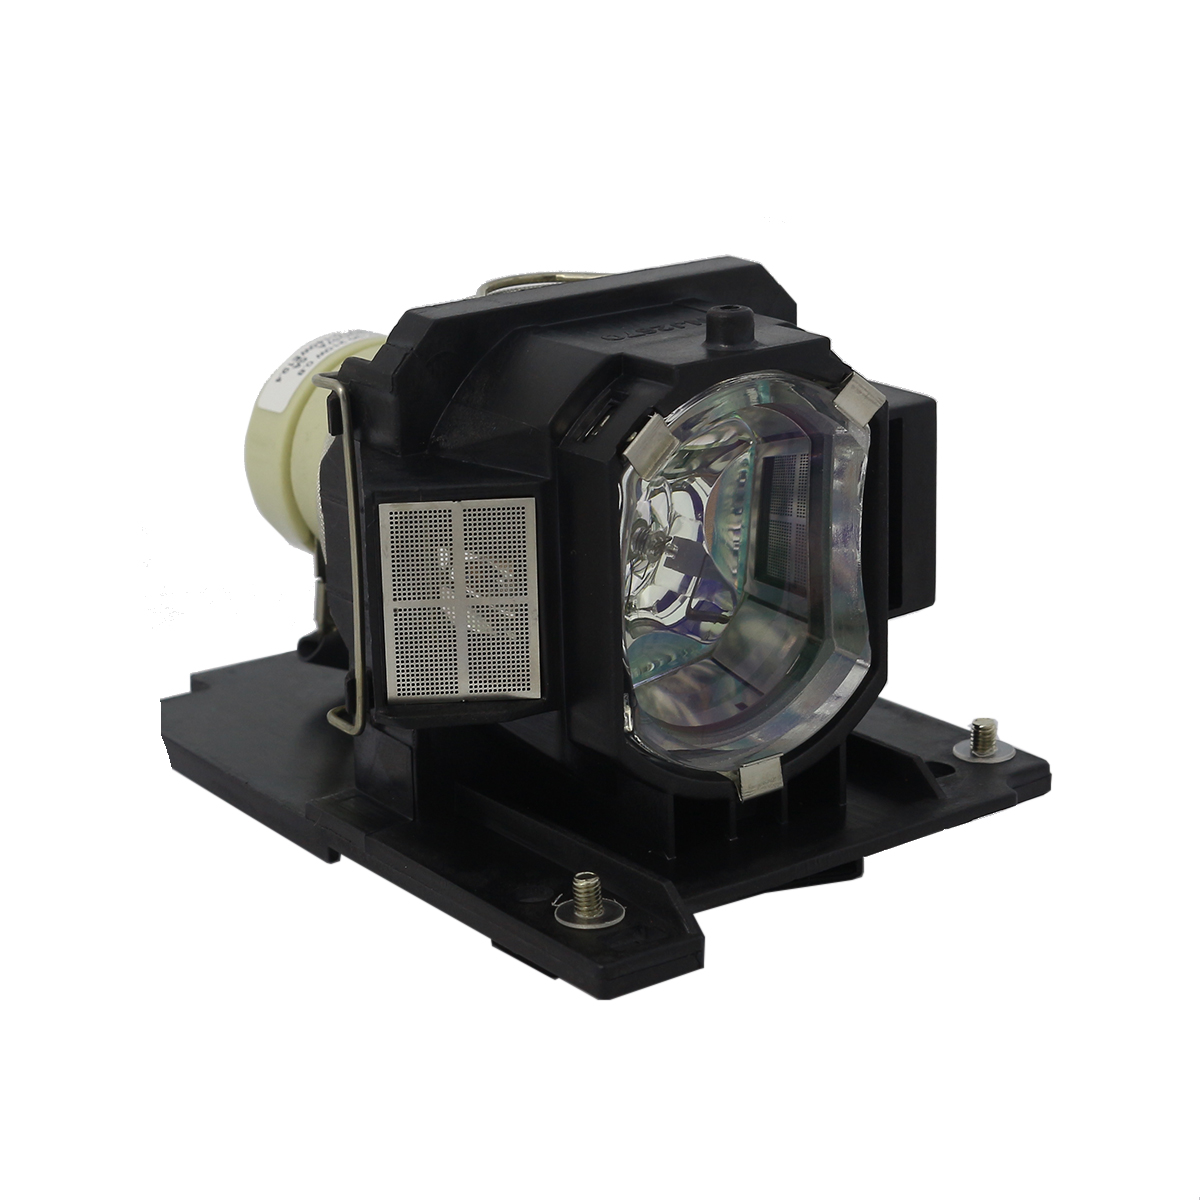 Lutema Economy Bulb for Dukane ImagePro 8924HW-RJ Projector (Lamp Only) - image 4 of 5